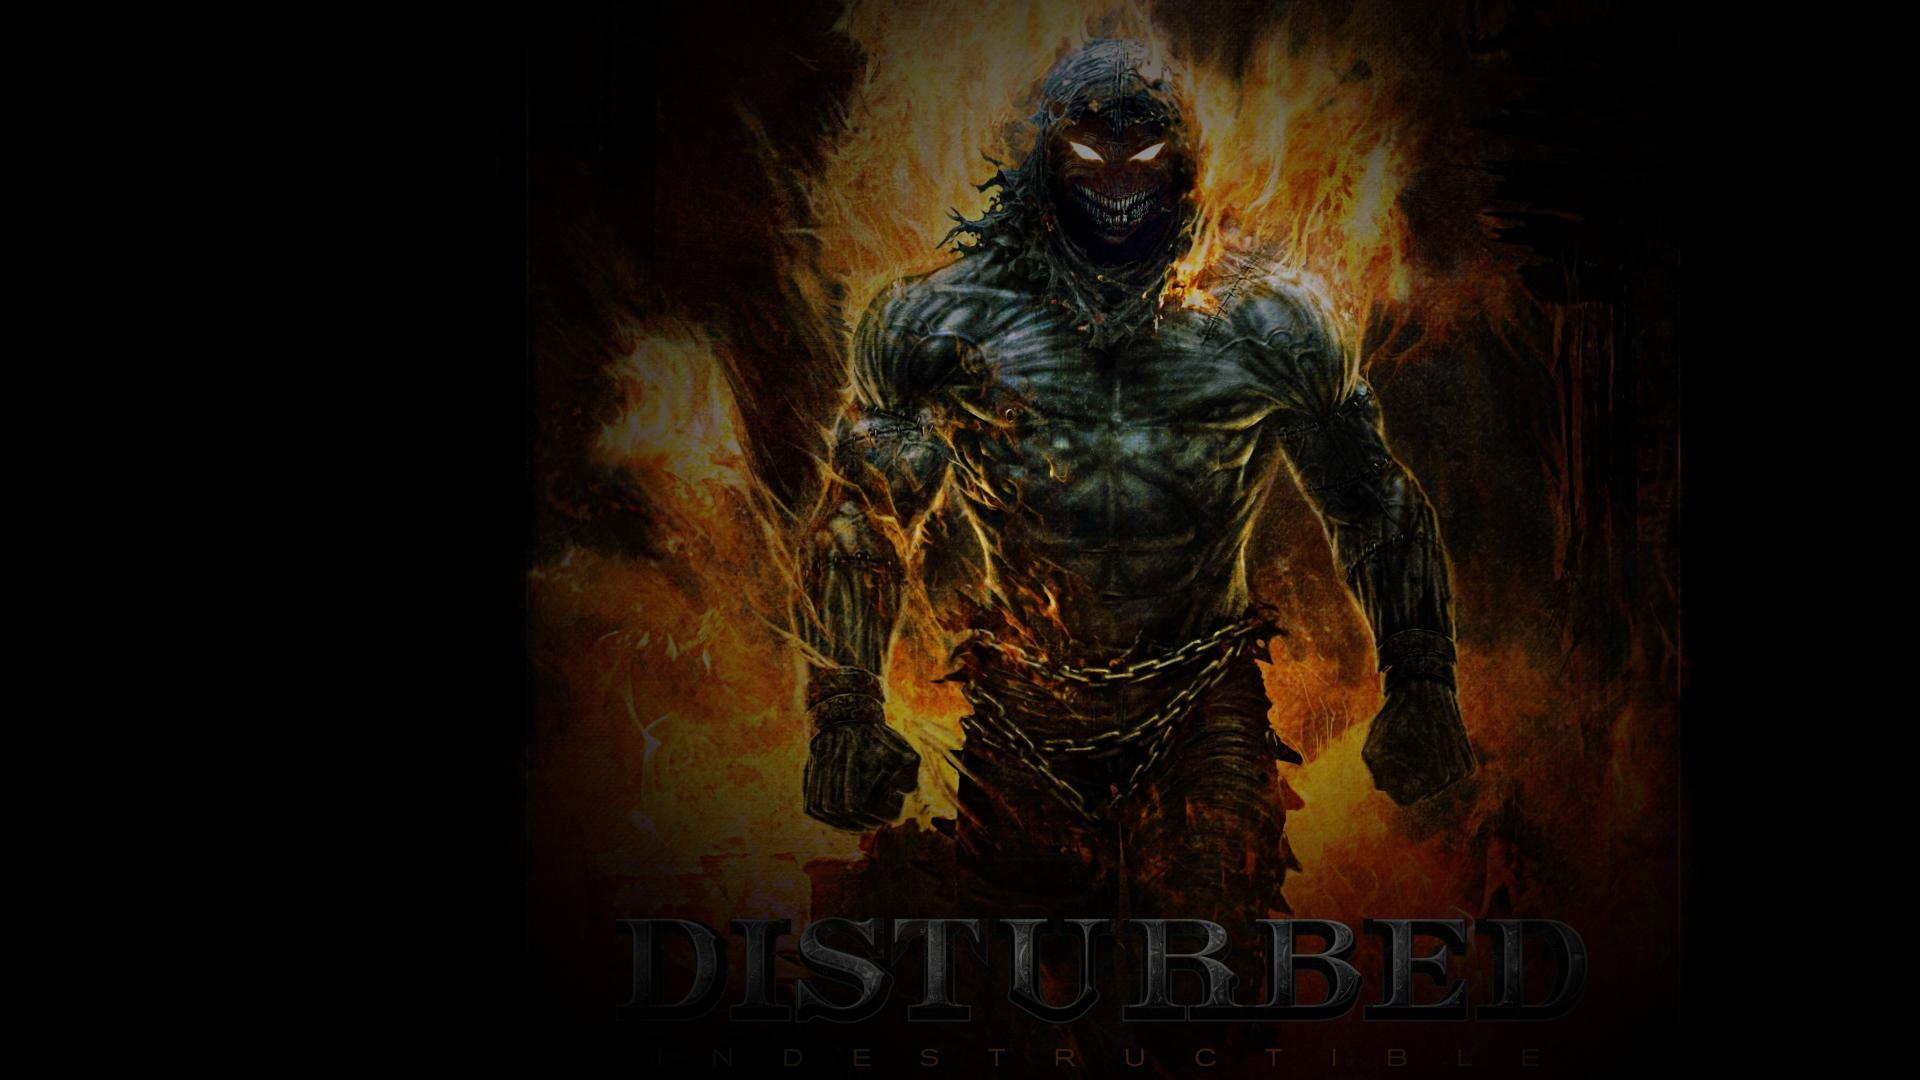 1920x1080 Disturbed Indestructible Heavy Metal Music Bands Hd Wallpaper px